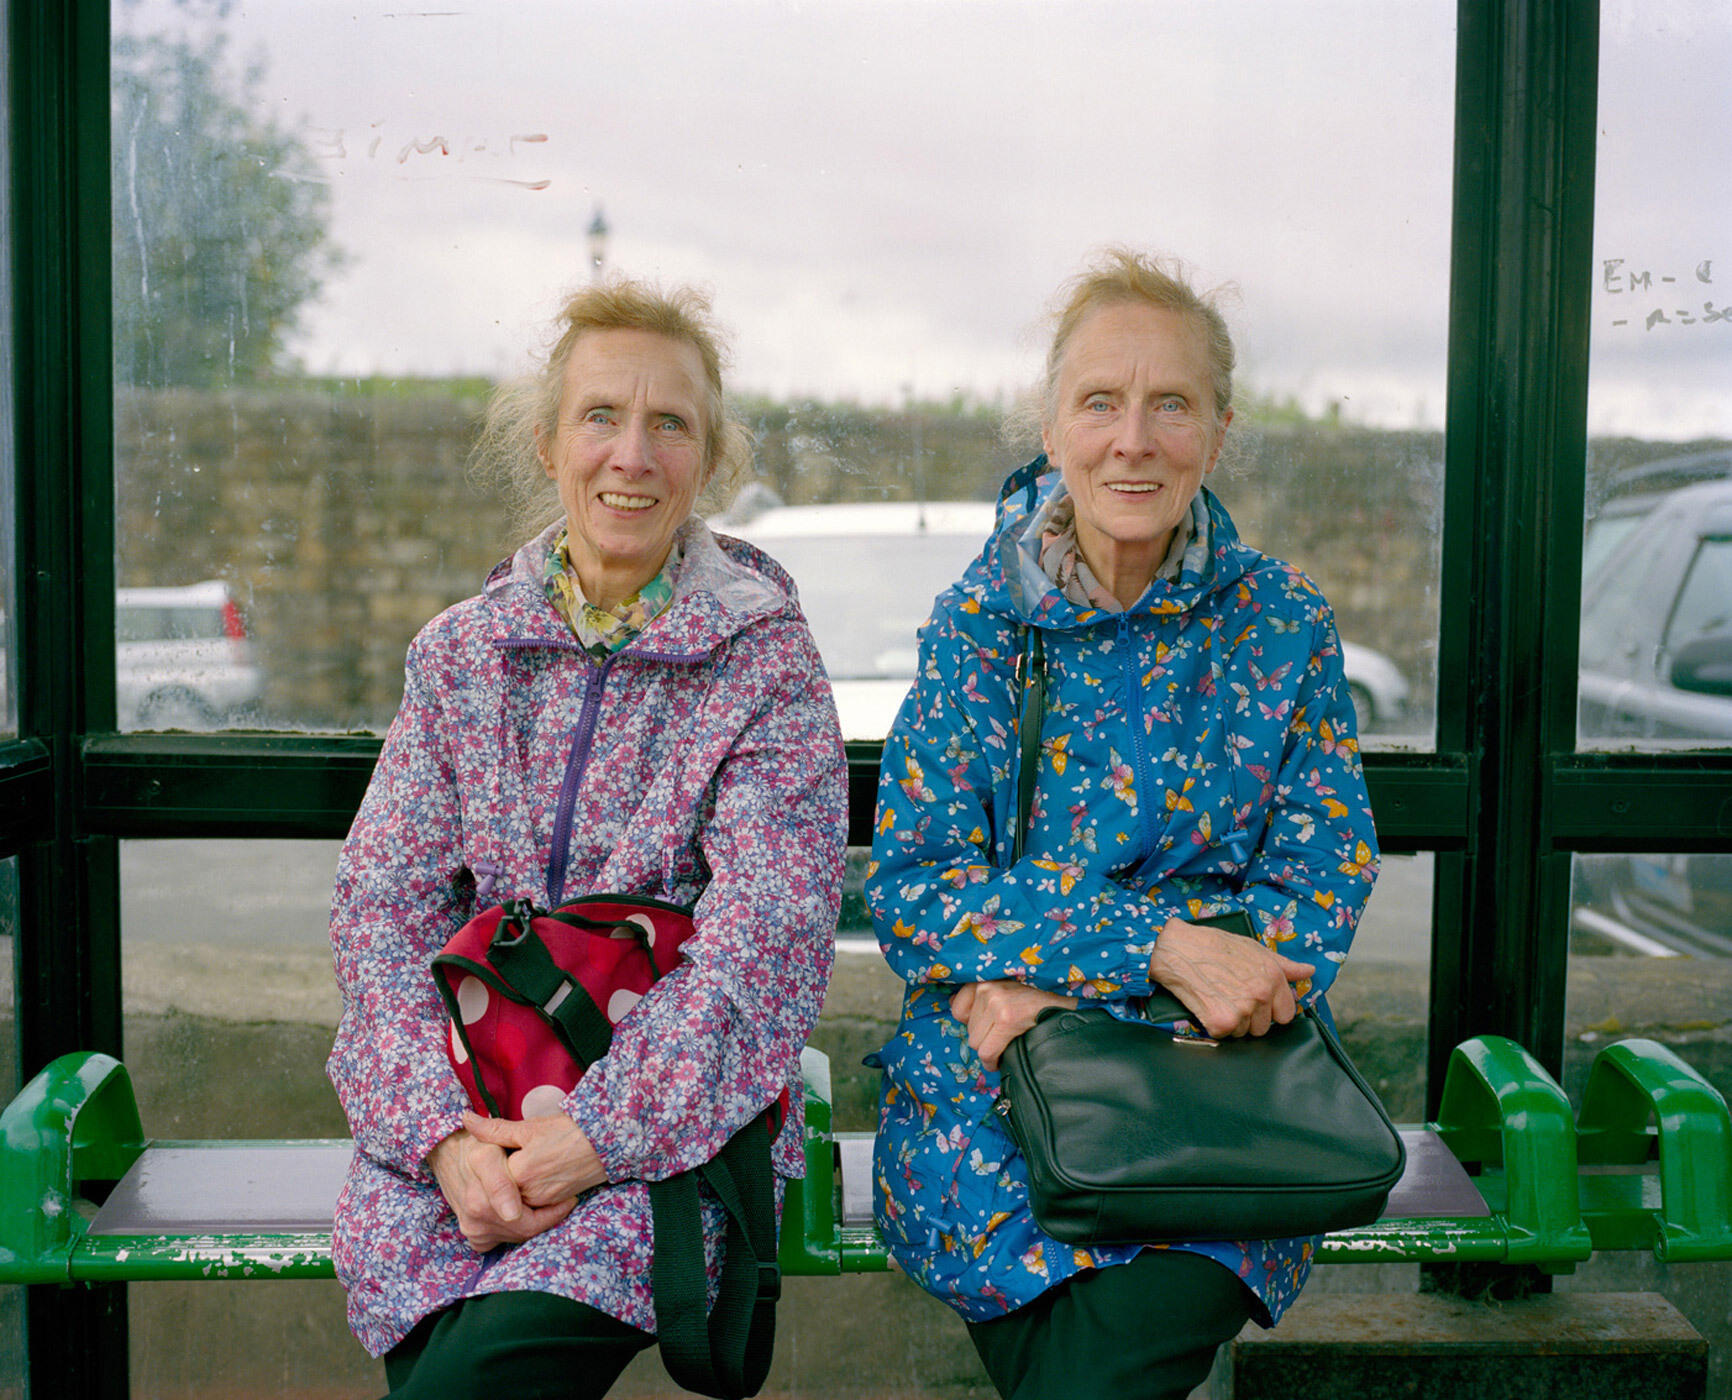 Twins At The Bus Stop, Flint, North Wales - July 2016